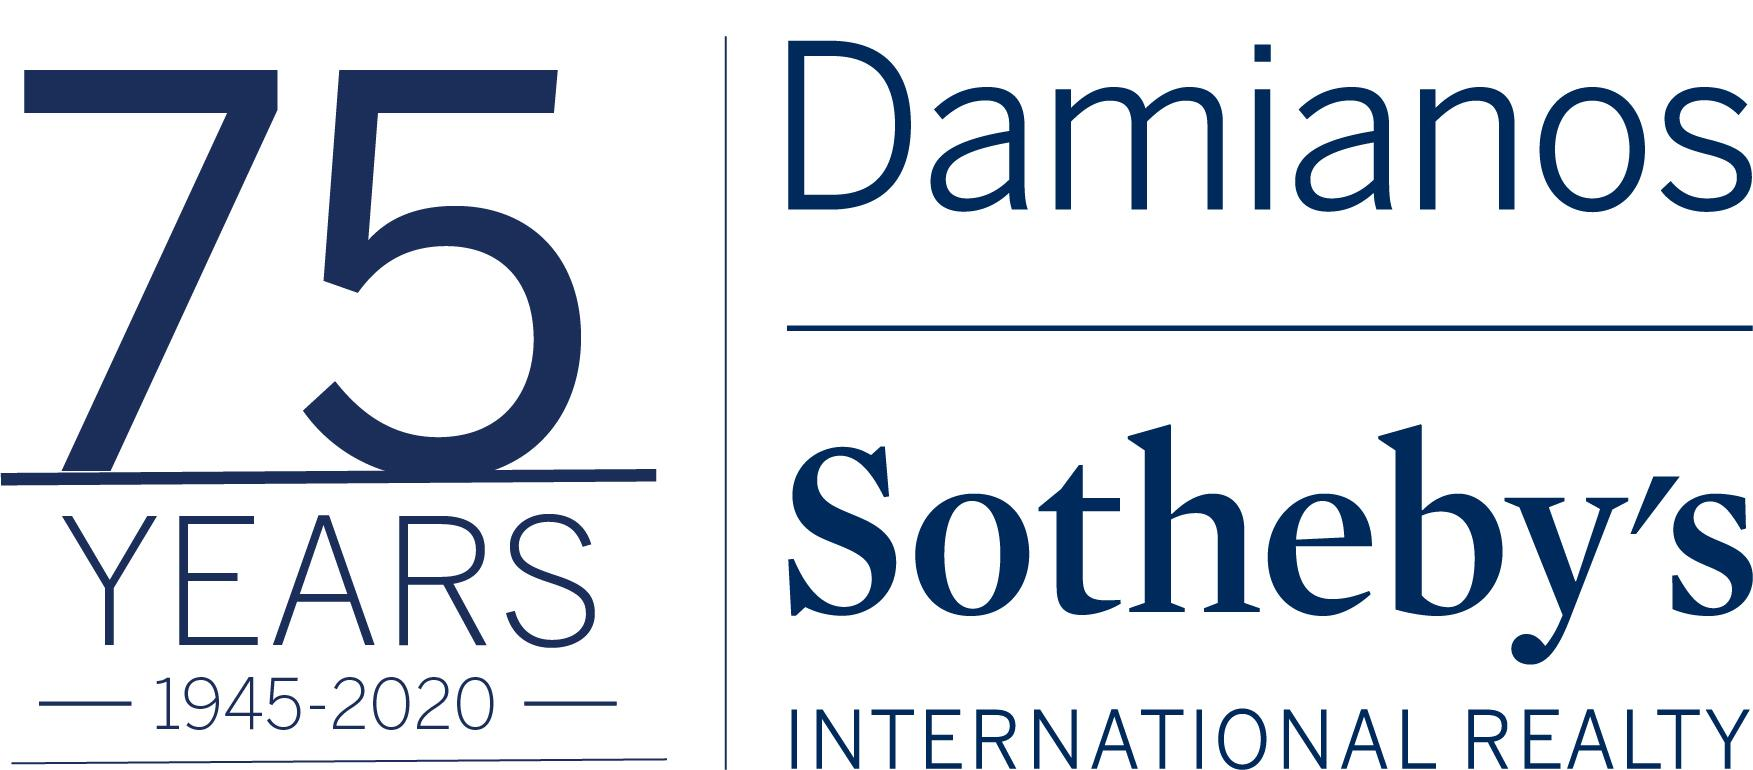 Damianos Sotheby's International Realty announces newest estate agent and 2019 awardees